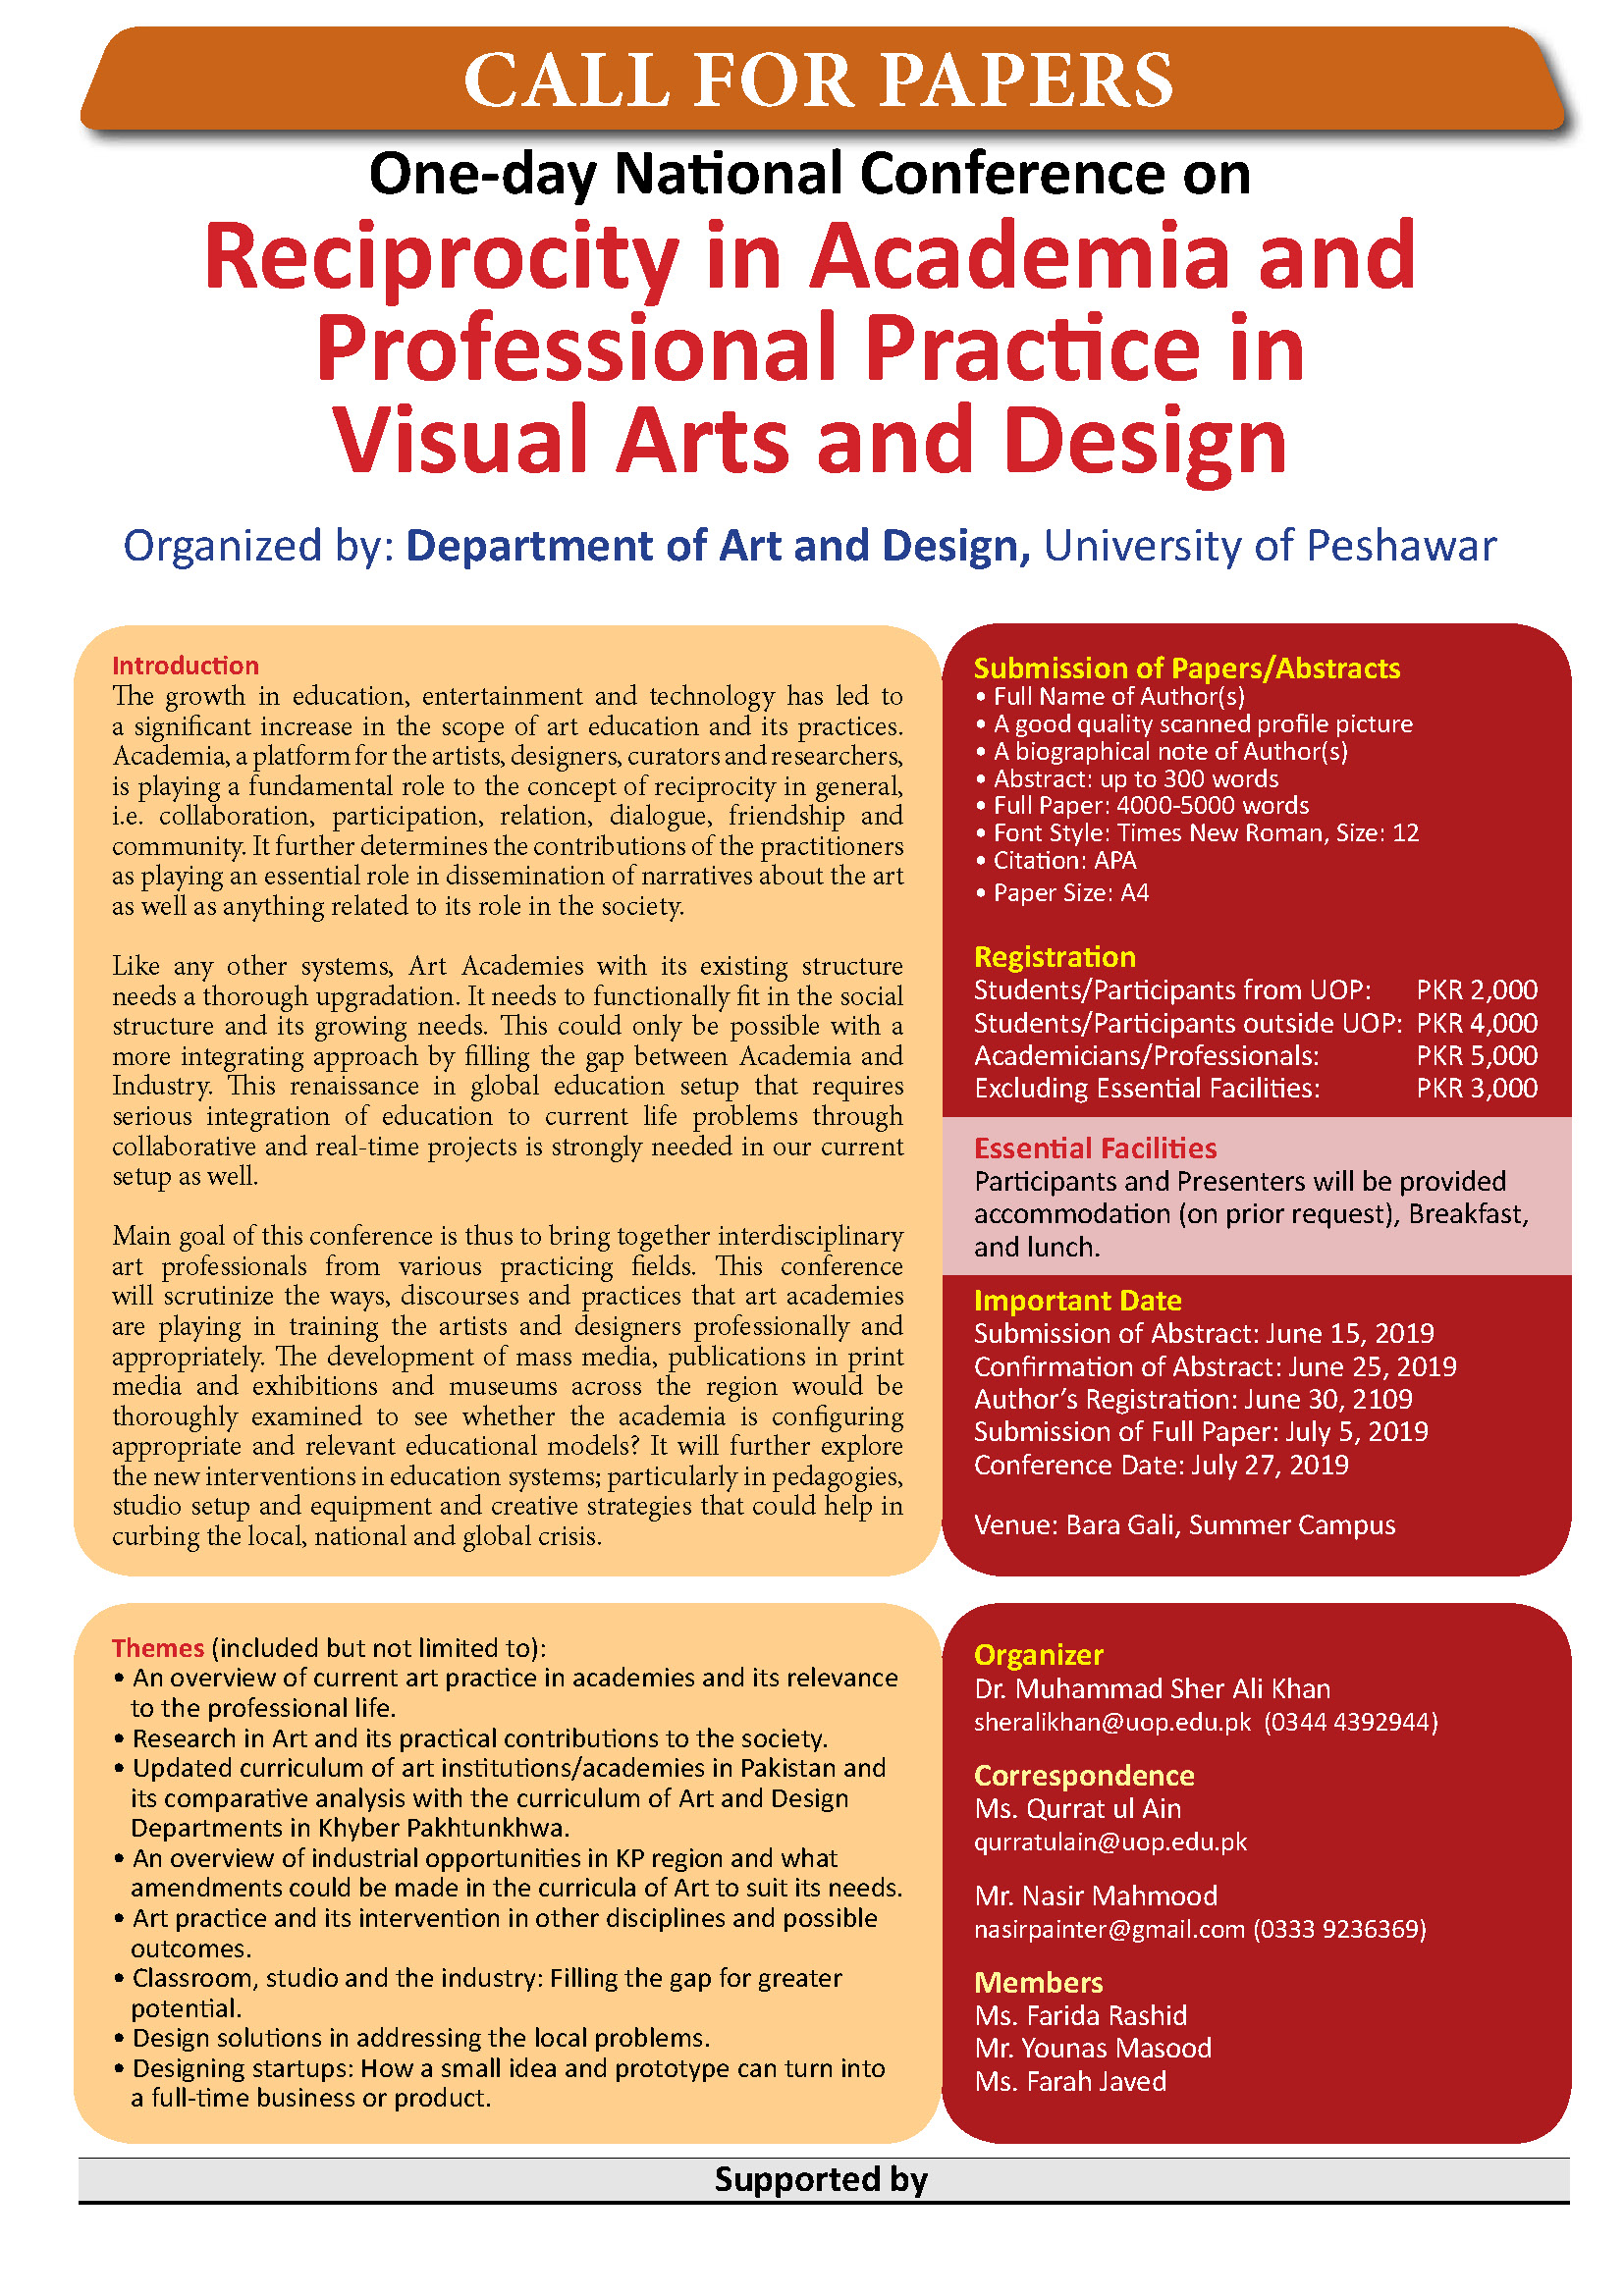 Call for Paper: One-day National Conference on Reciprocity in  Academia and Professional Practice in Visual Arts and Design